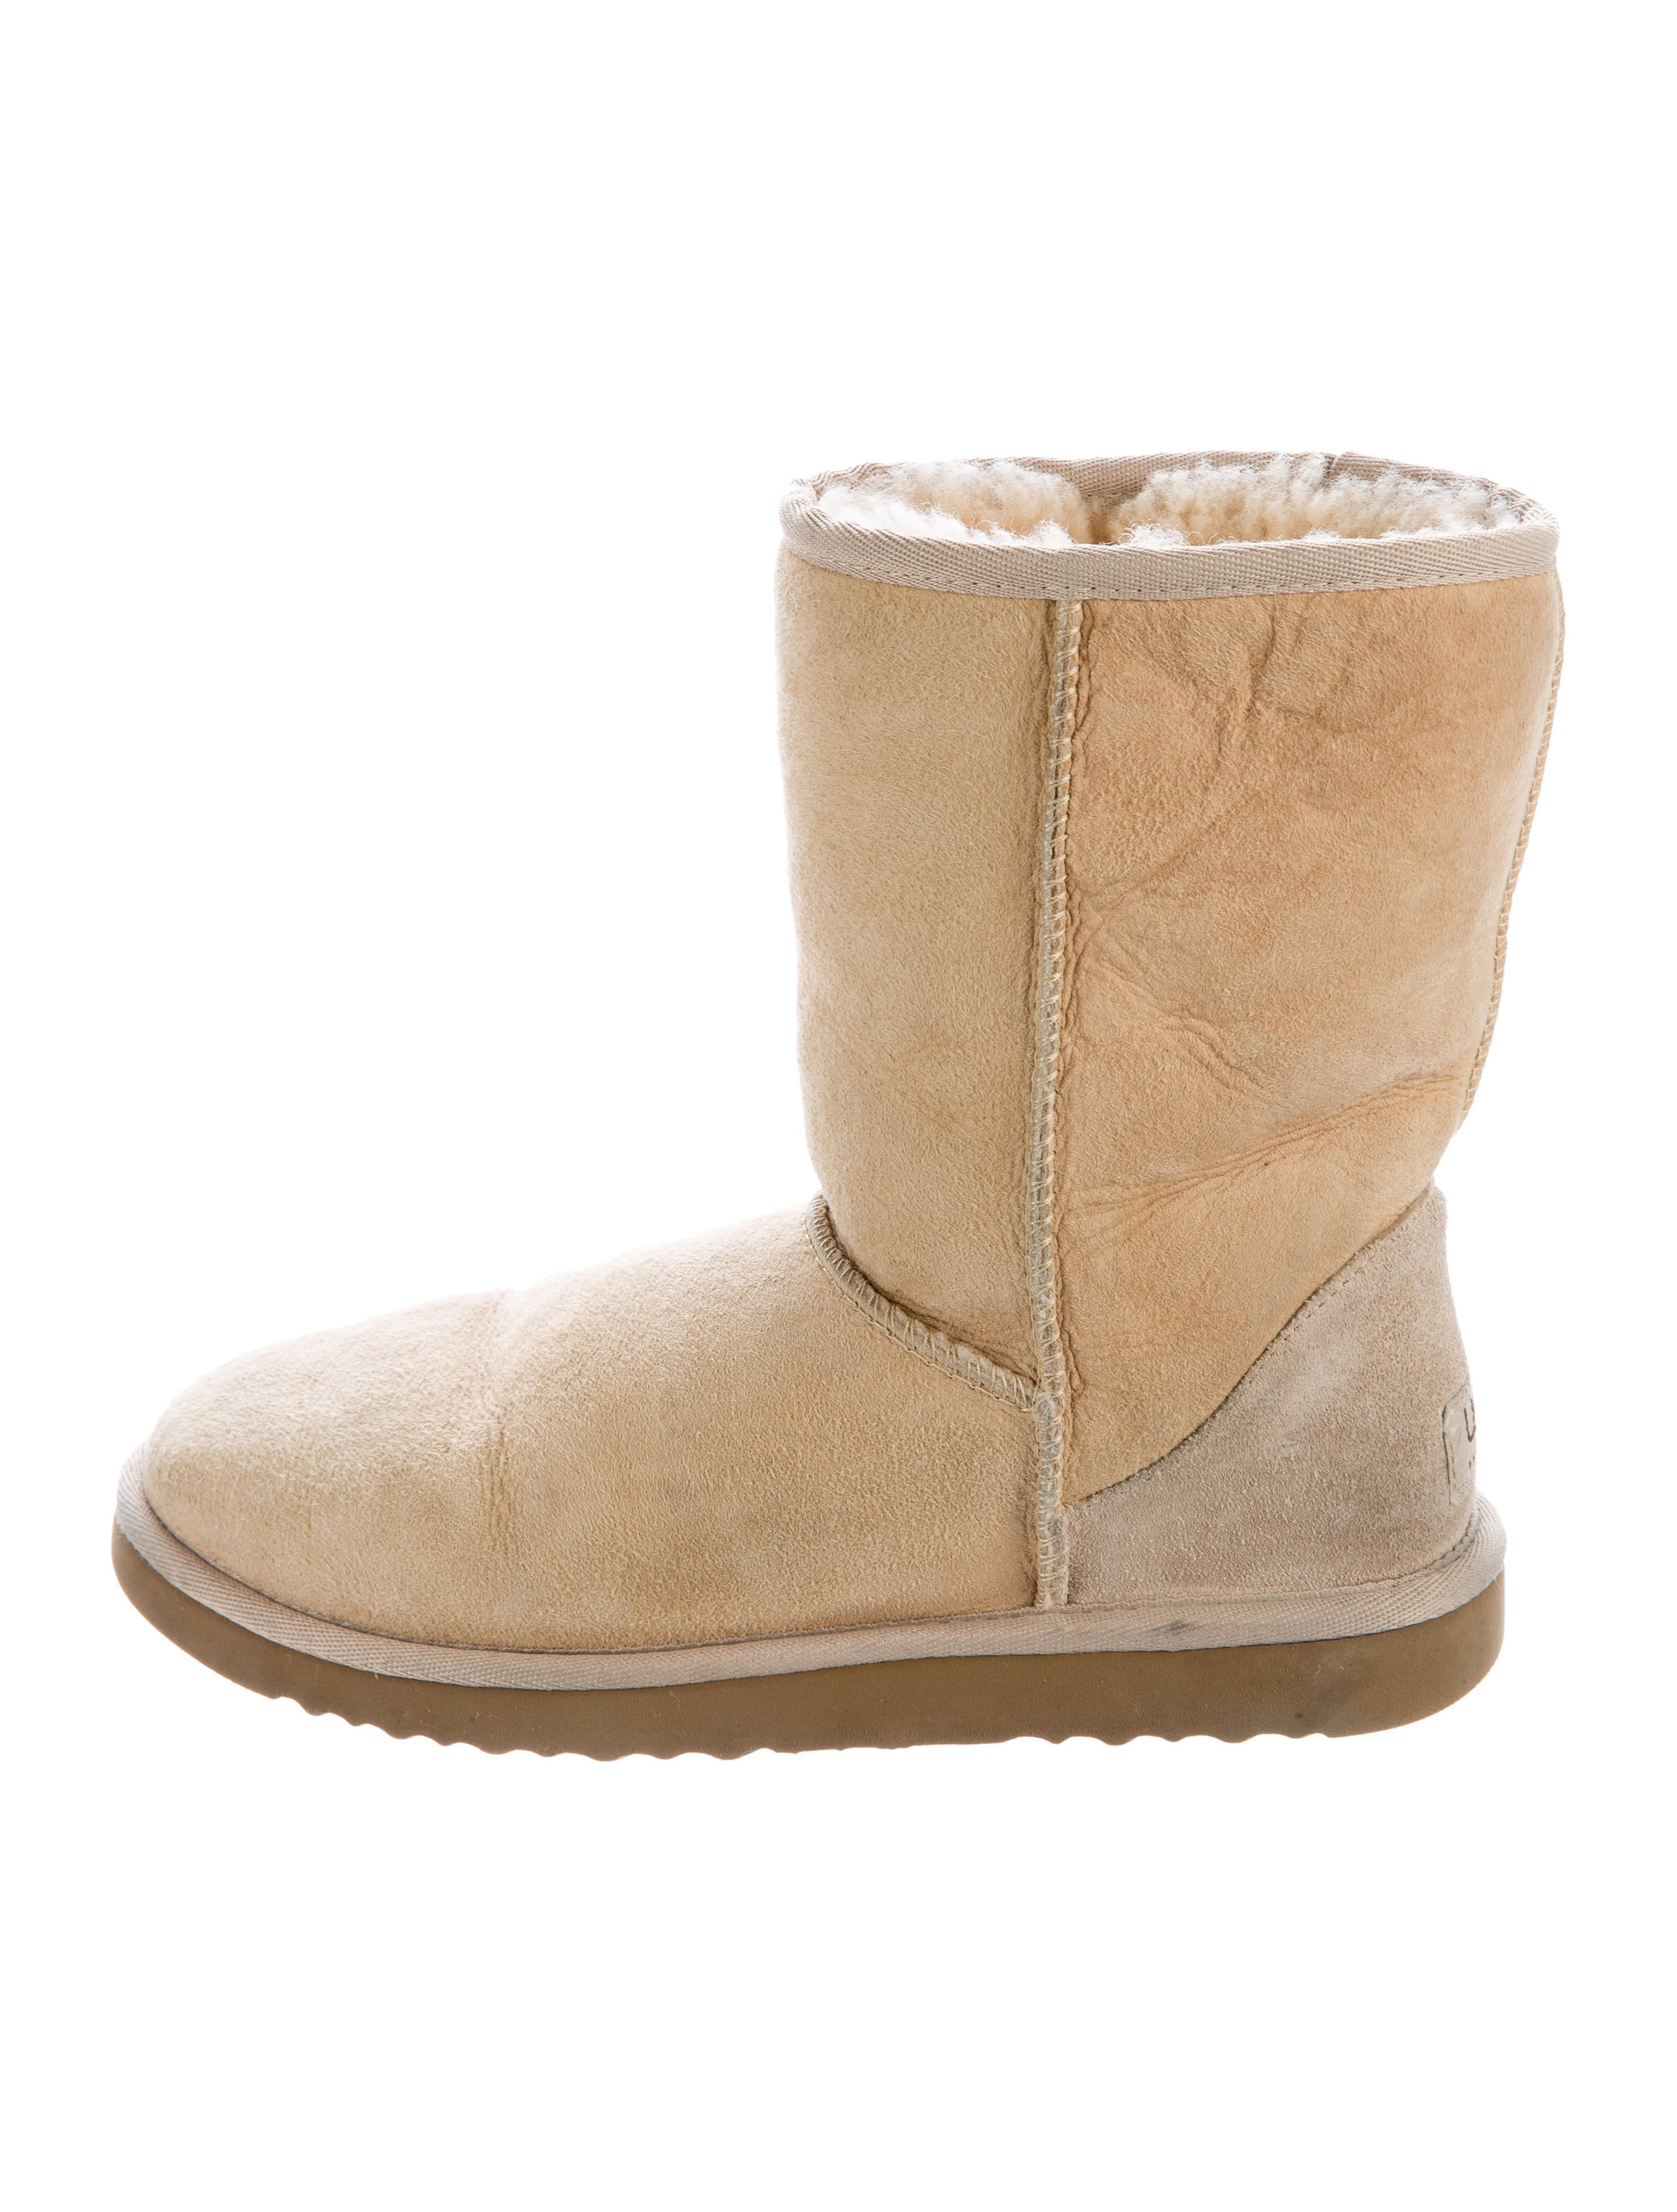 ugg australia suede toe ankle boots shoes